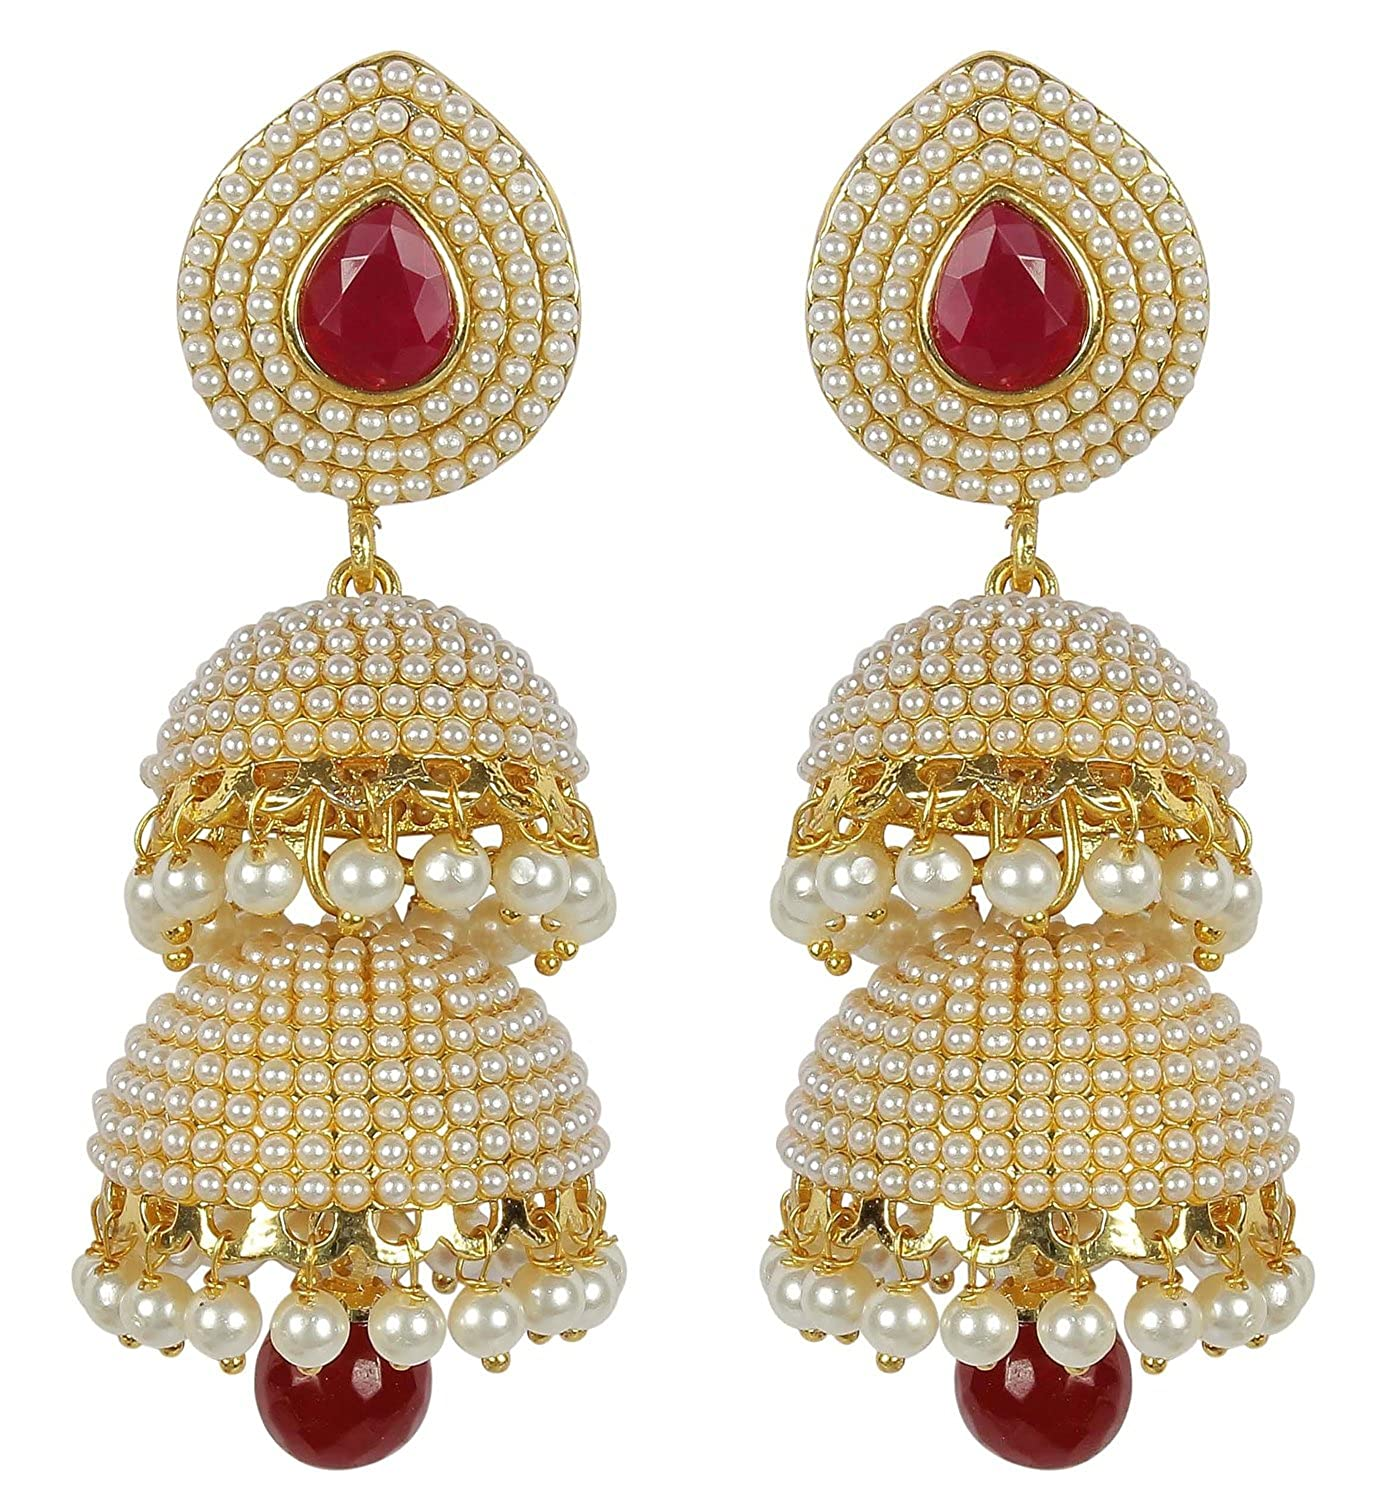 Pearl Stylish earrings for stylish girls exclusive photo